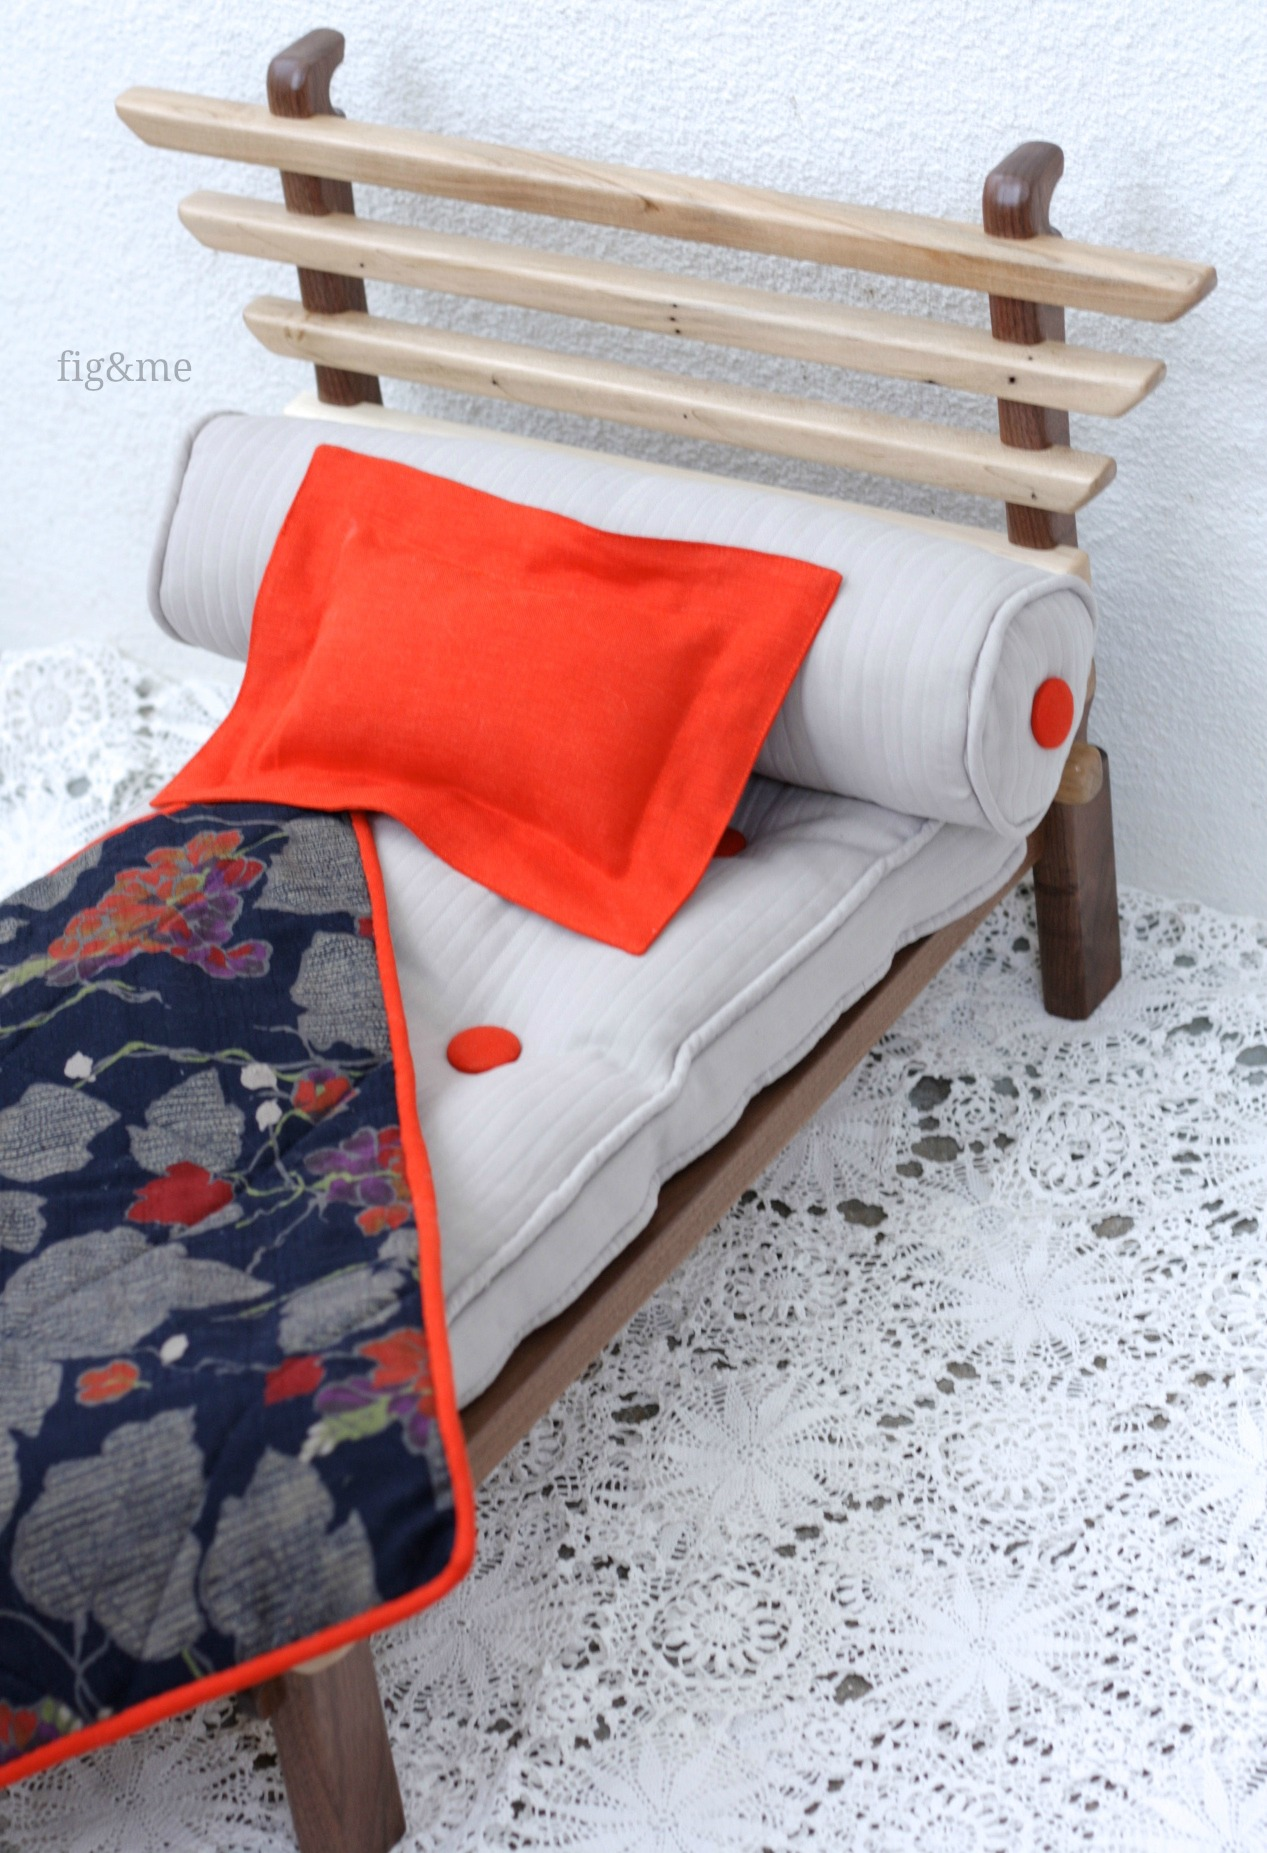 Japanese inspired wooden doll bed, by Fig&me.